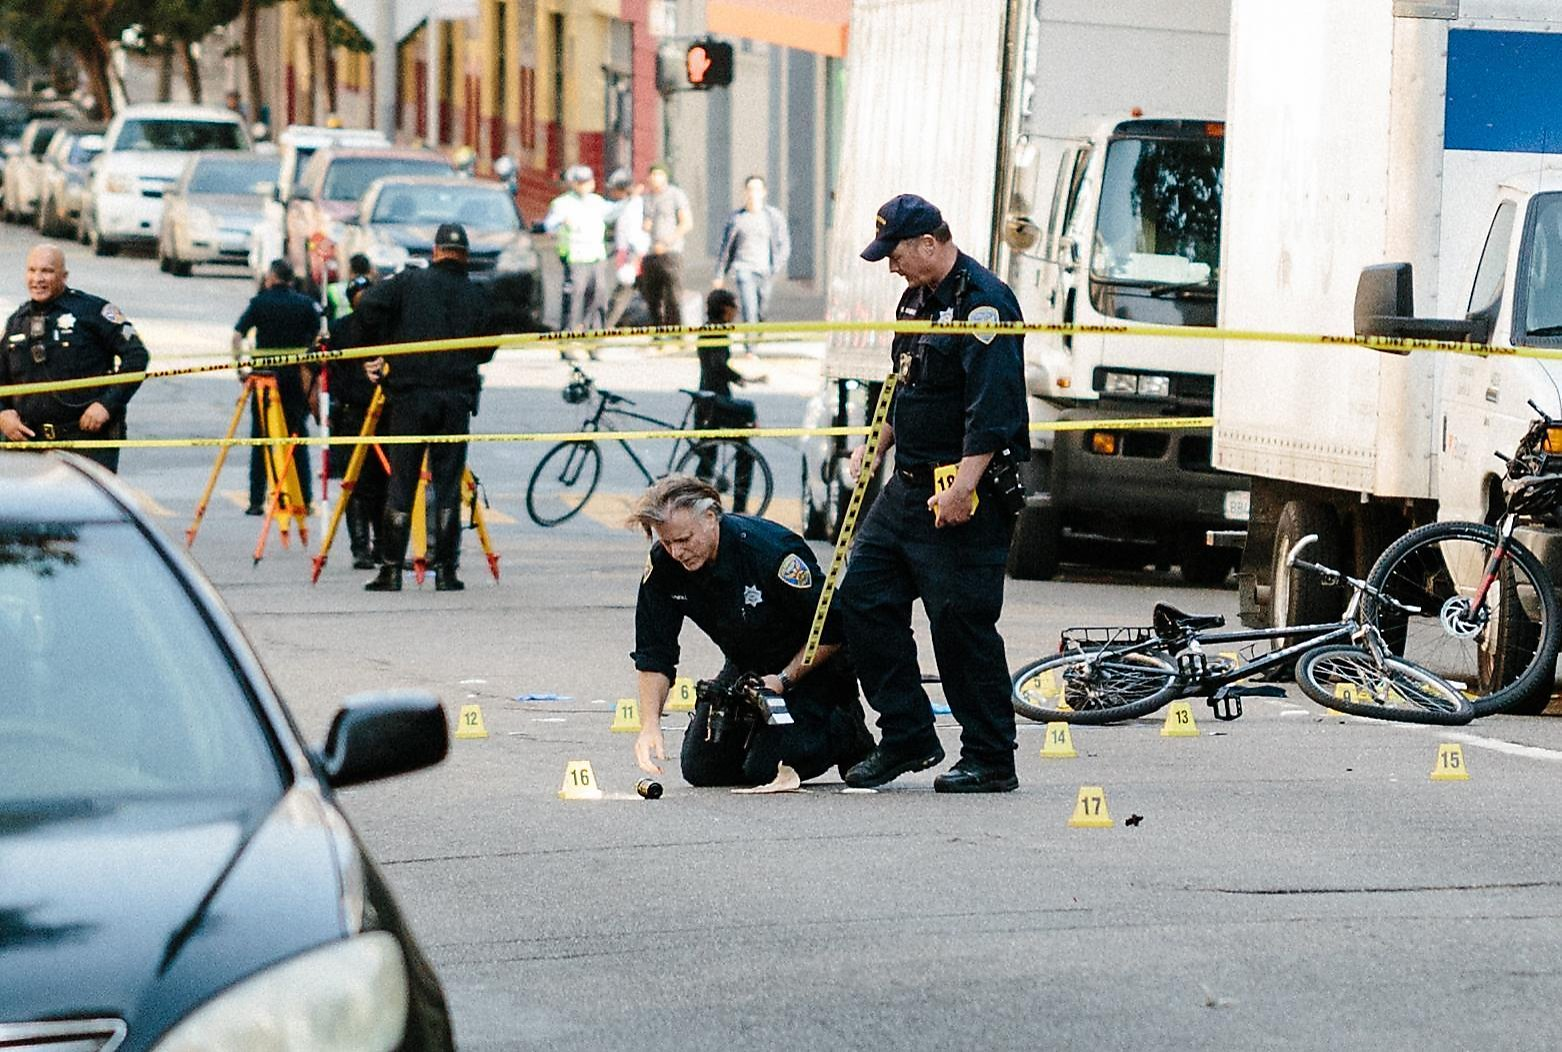 suspect arrested after sfpd officer on bike is hit critically